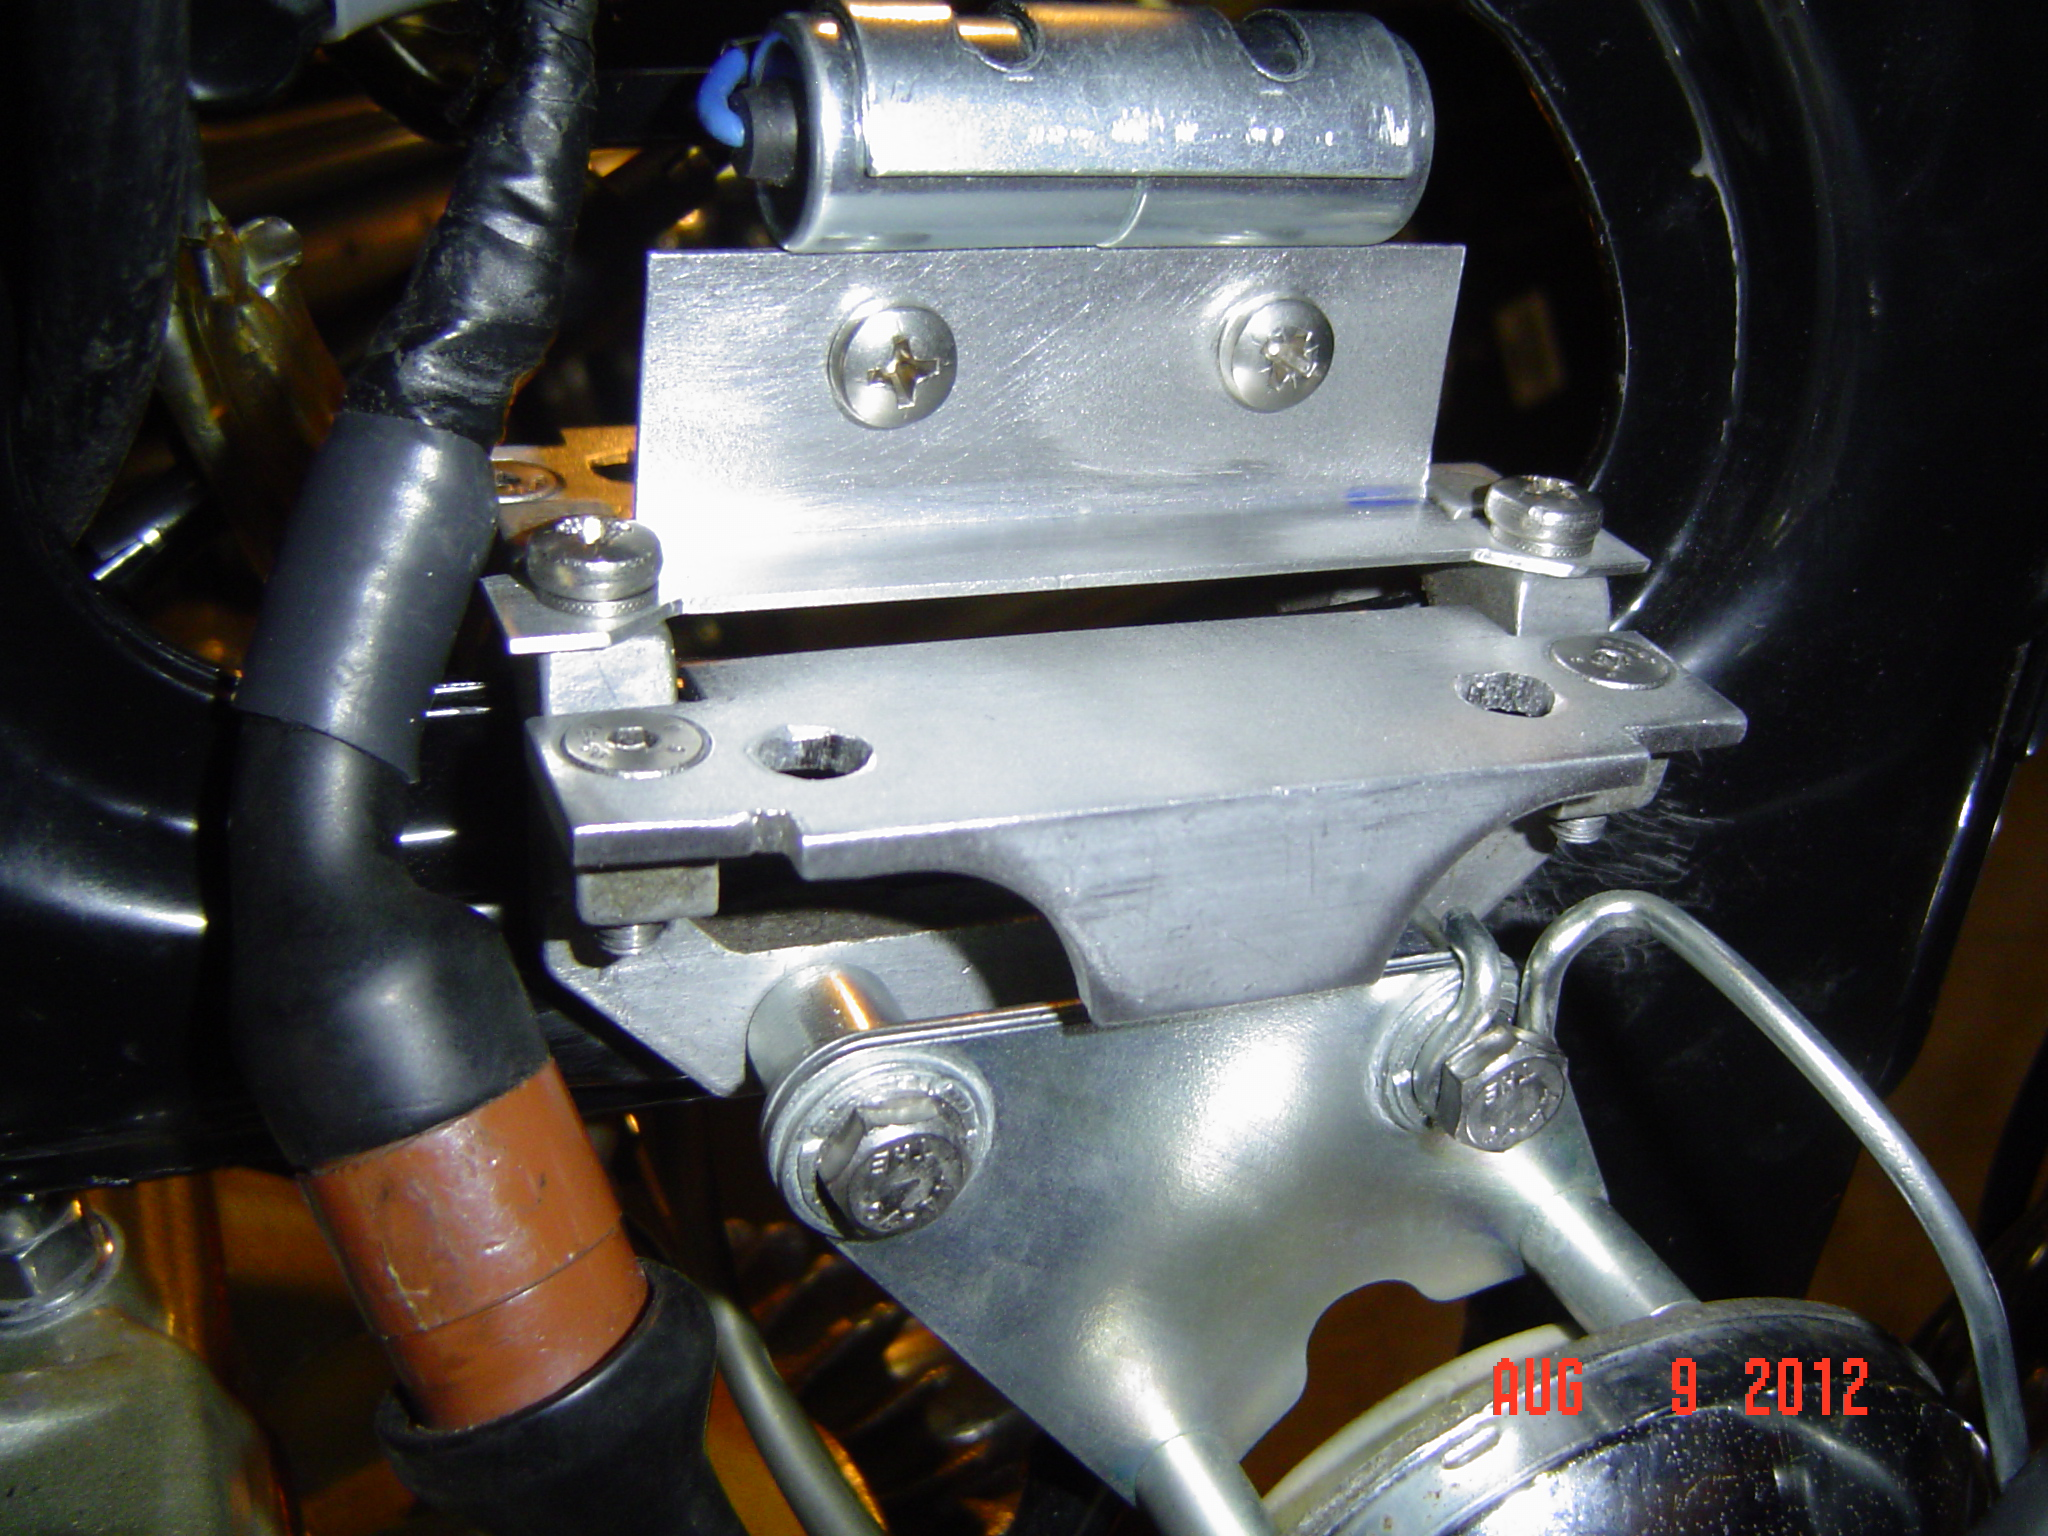 CB350 RPM wobble and bog-down stall